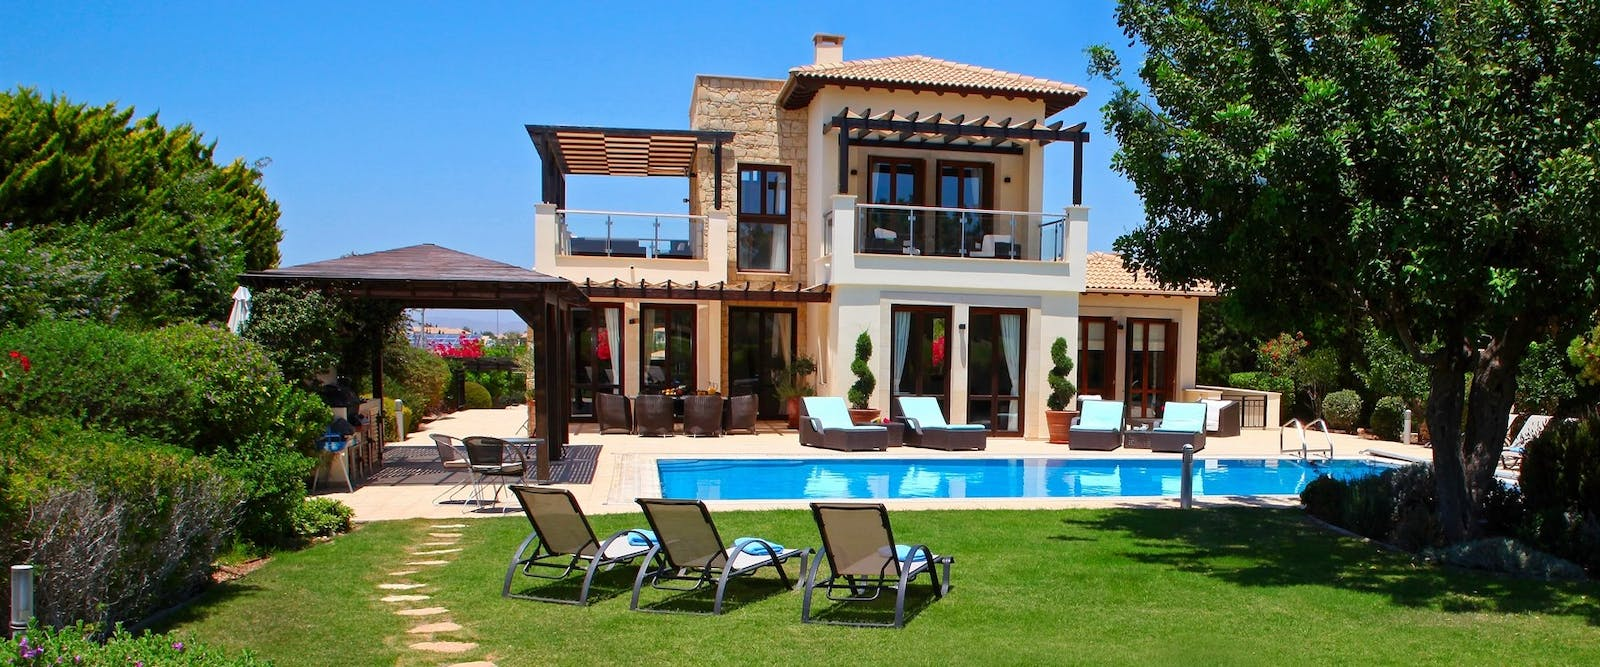 Superior Four Bed Villa at Aphrodite Hills Holiday Residences - Villas & Apartments, Paphos, Cyprus